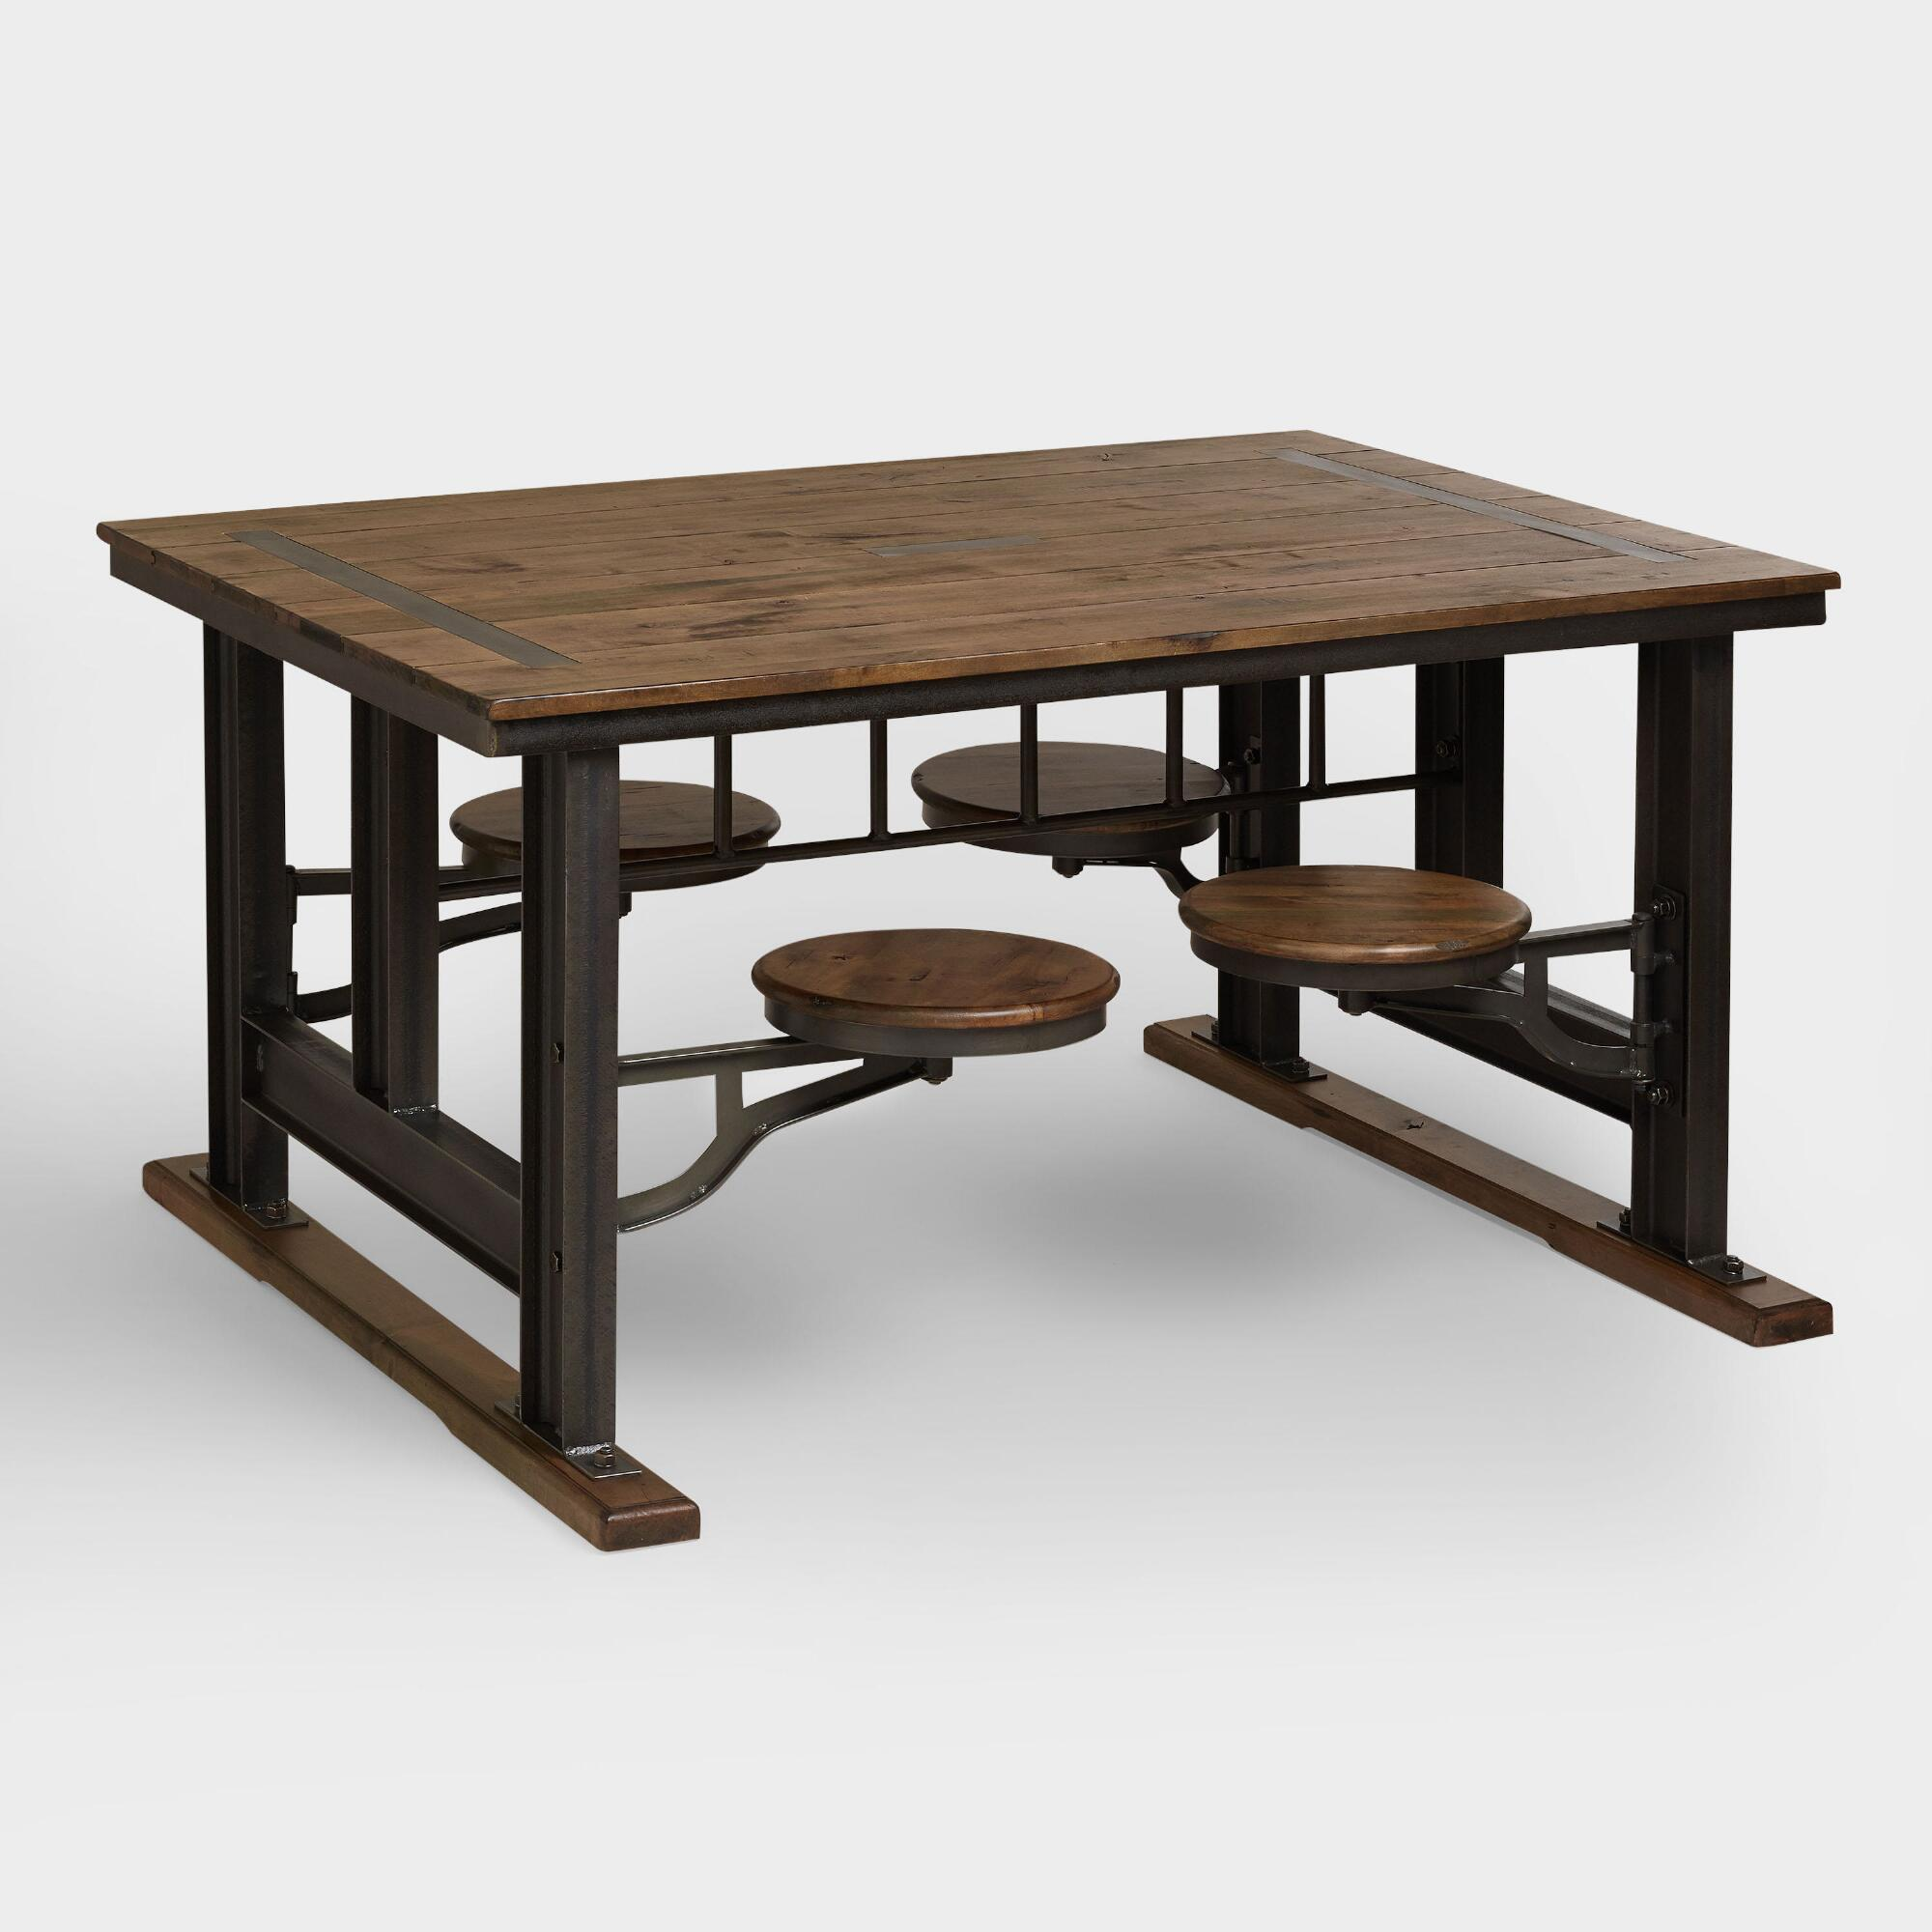 industrial furniture rustic chic world market iipsrv fcgi corner accent table for dining room galvin cafeteria ikea thin indoor bistro set small side with drawers steven alan